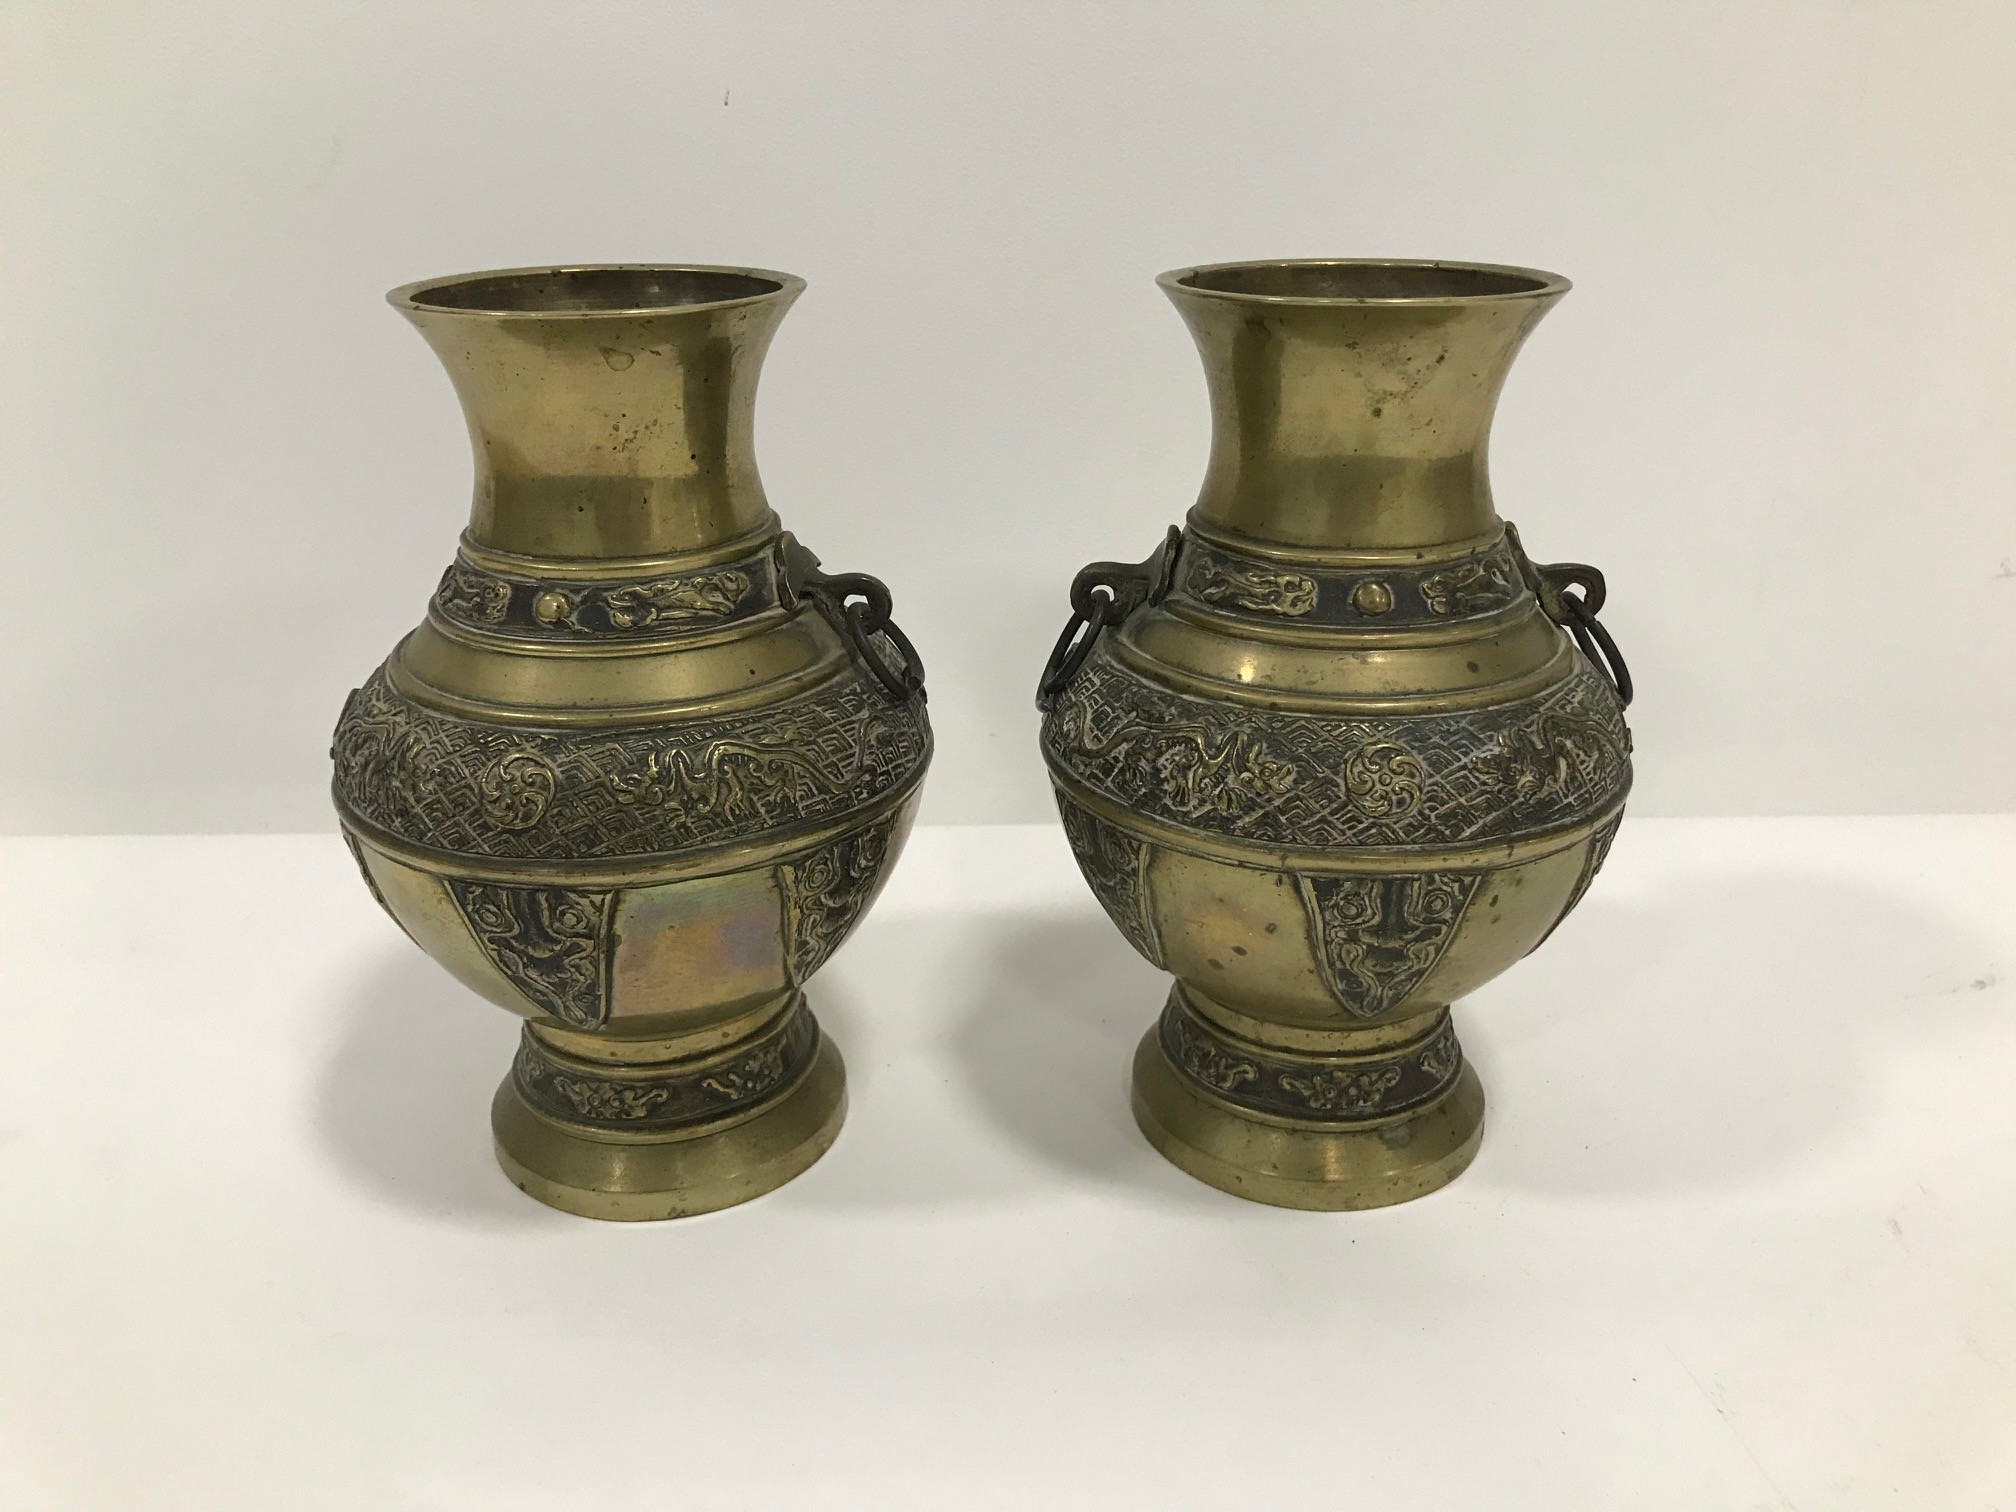 A pair of early 20th century Chinese brass vases, 19.5cm high, bulbous bodies with raised